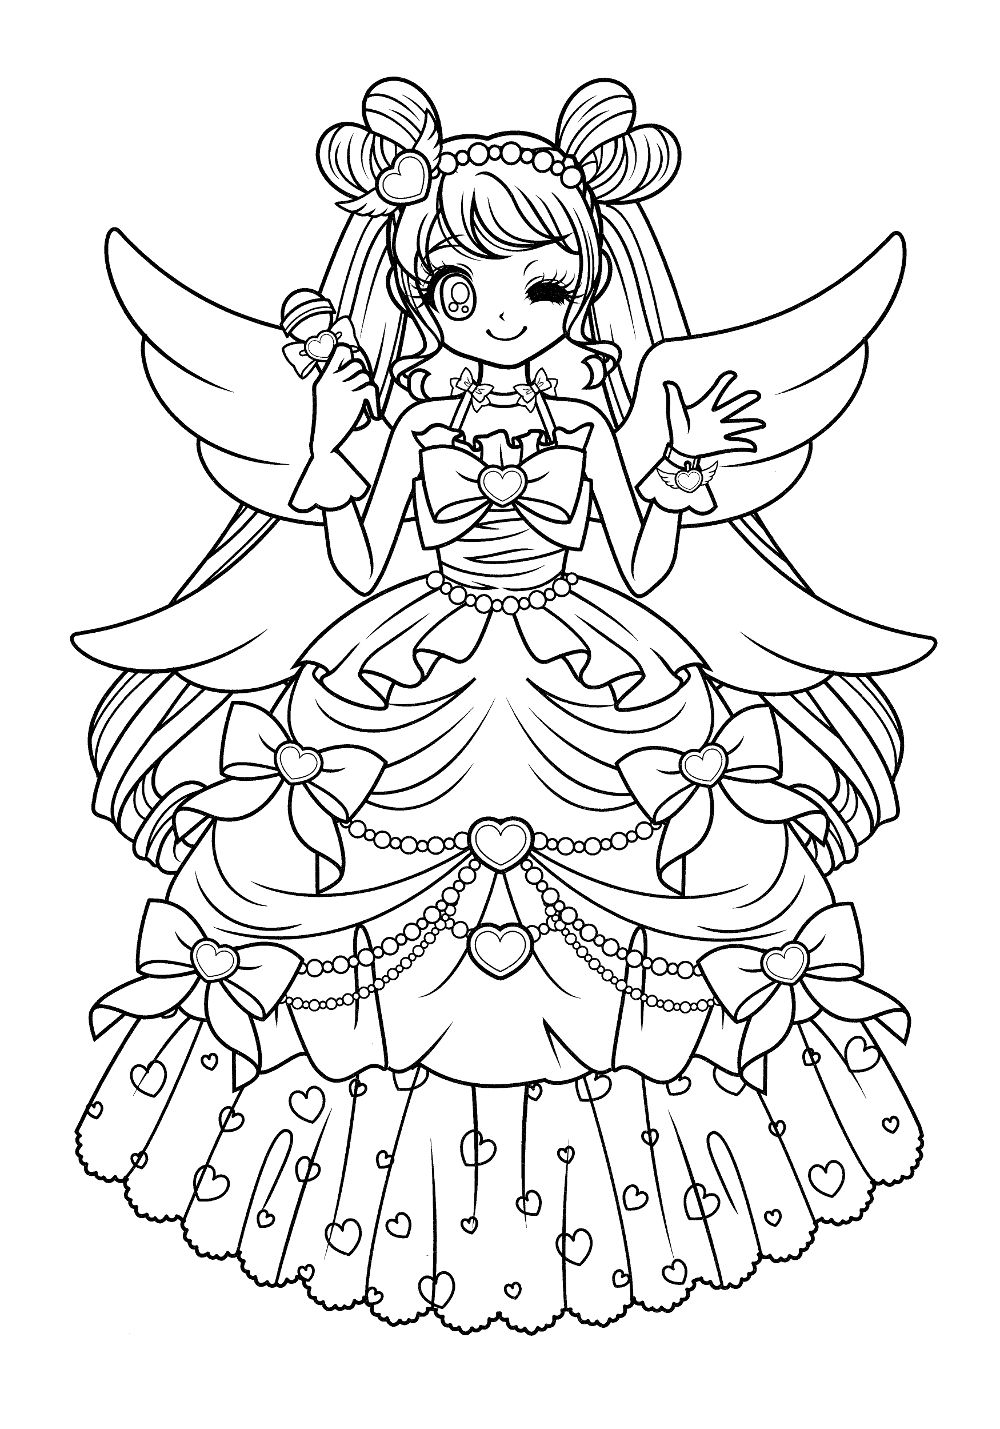 Pin by Michelle on Anime coloring pages! | Pinterest | Coloring ...